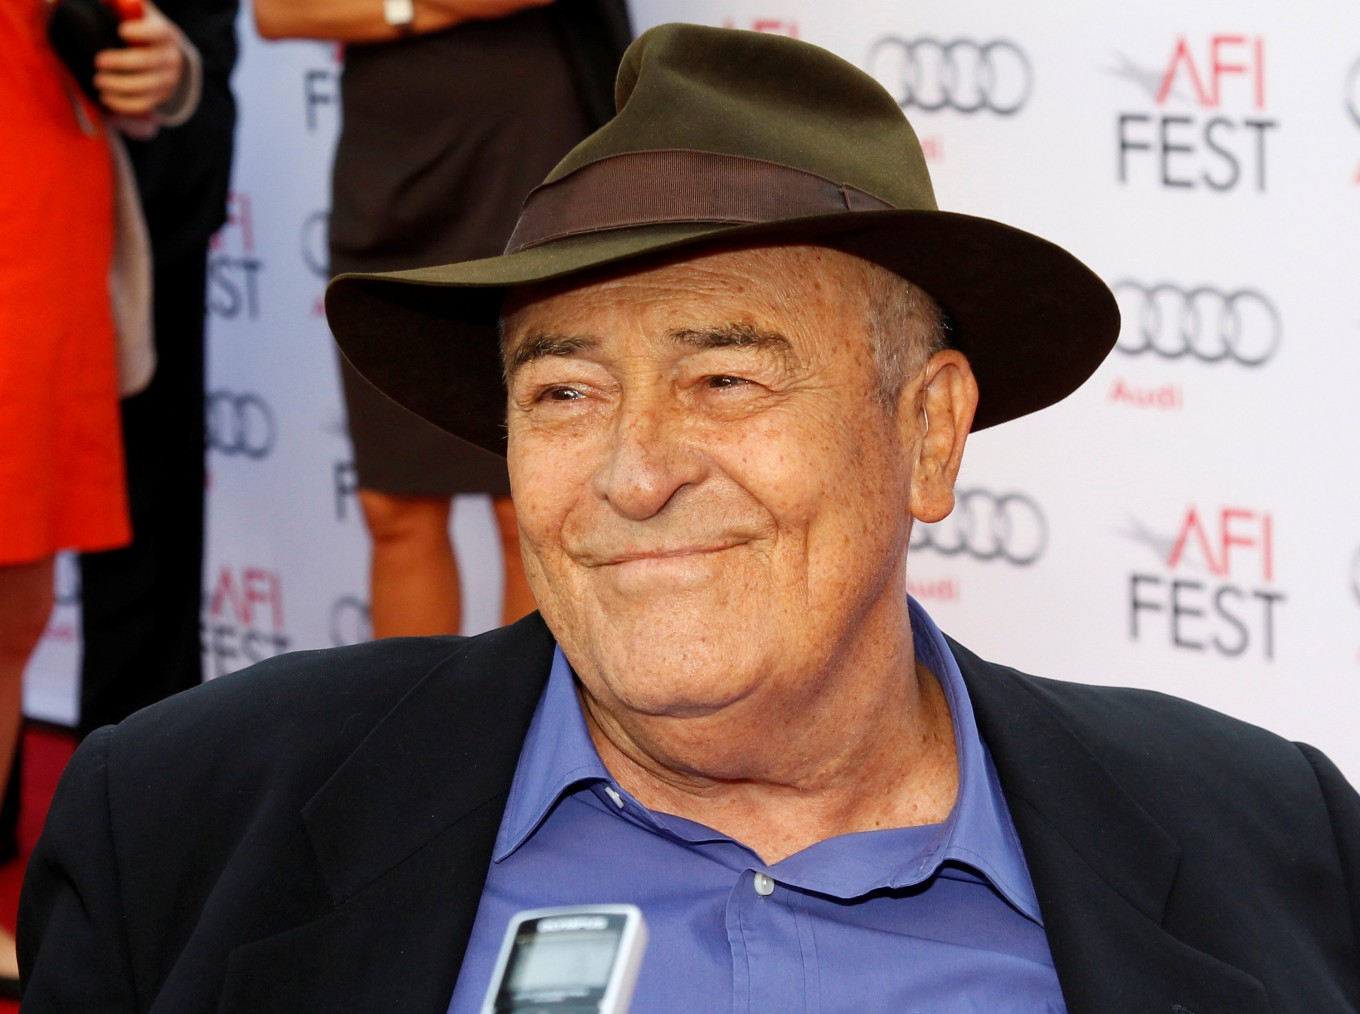 'Last Tango': The tainted 'masterpiece' that dogged Bertolucci